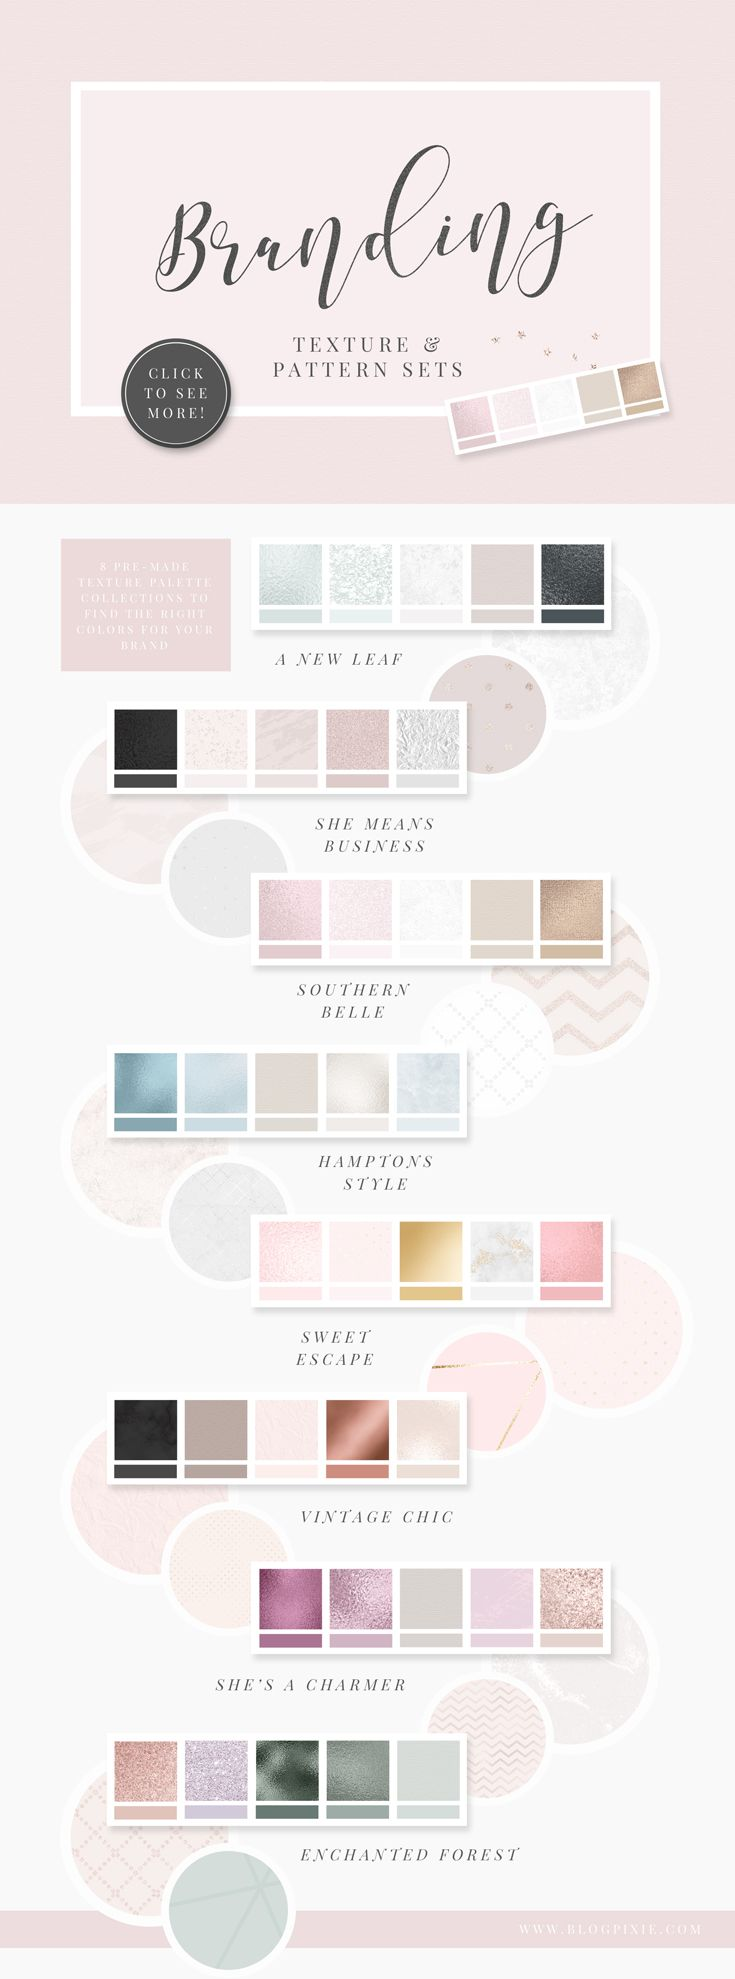 Branding texture and pattern sets. Find the perfect color palette for your brand and add texture for that extra special look.